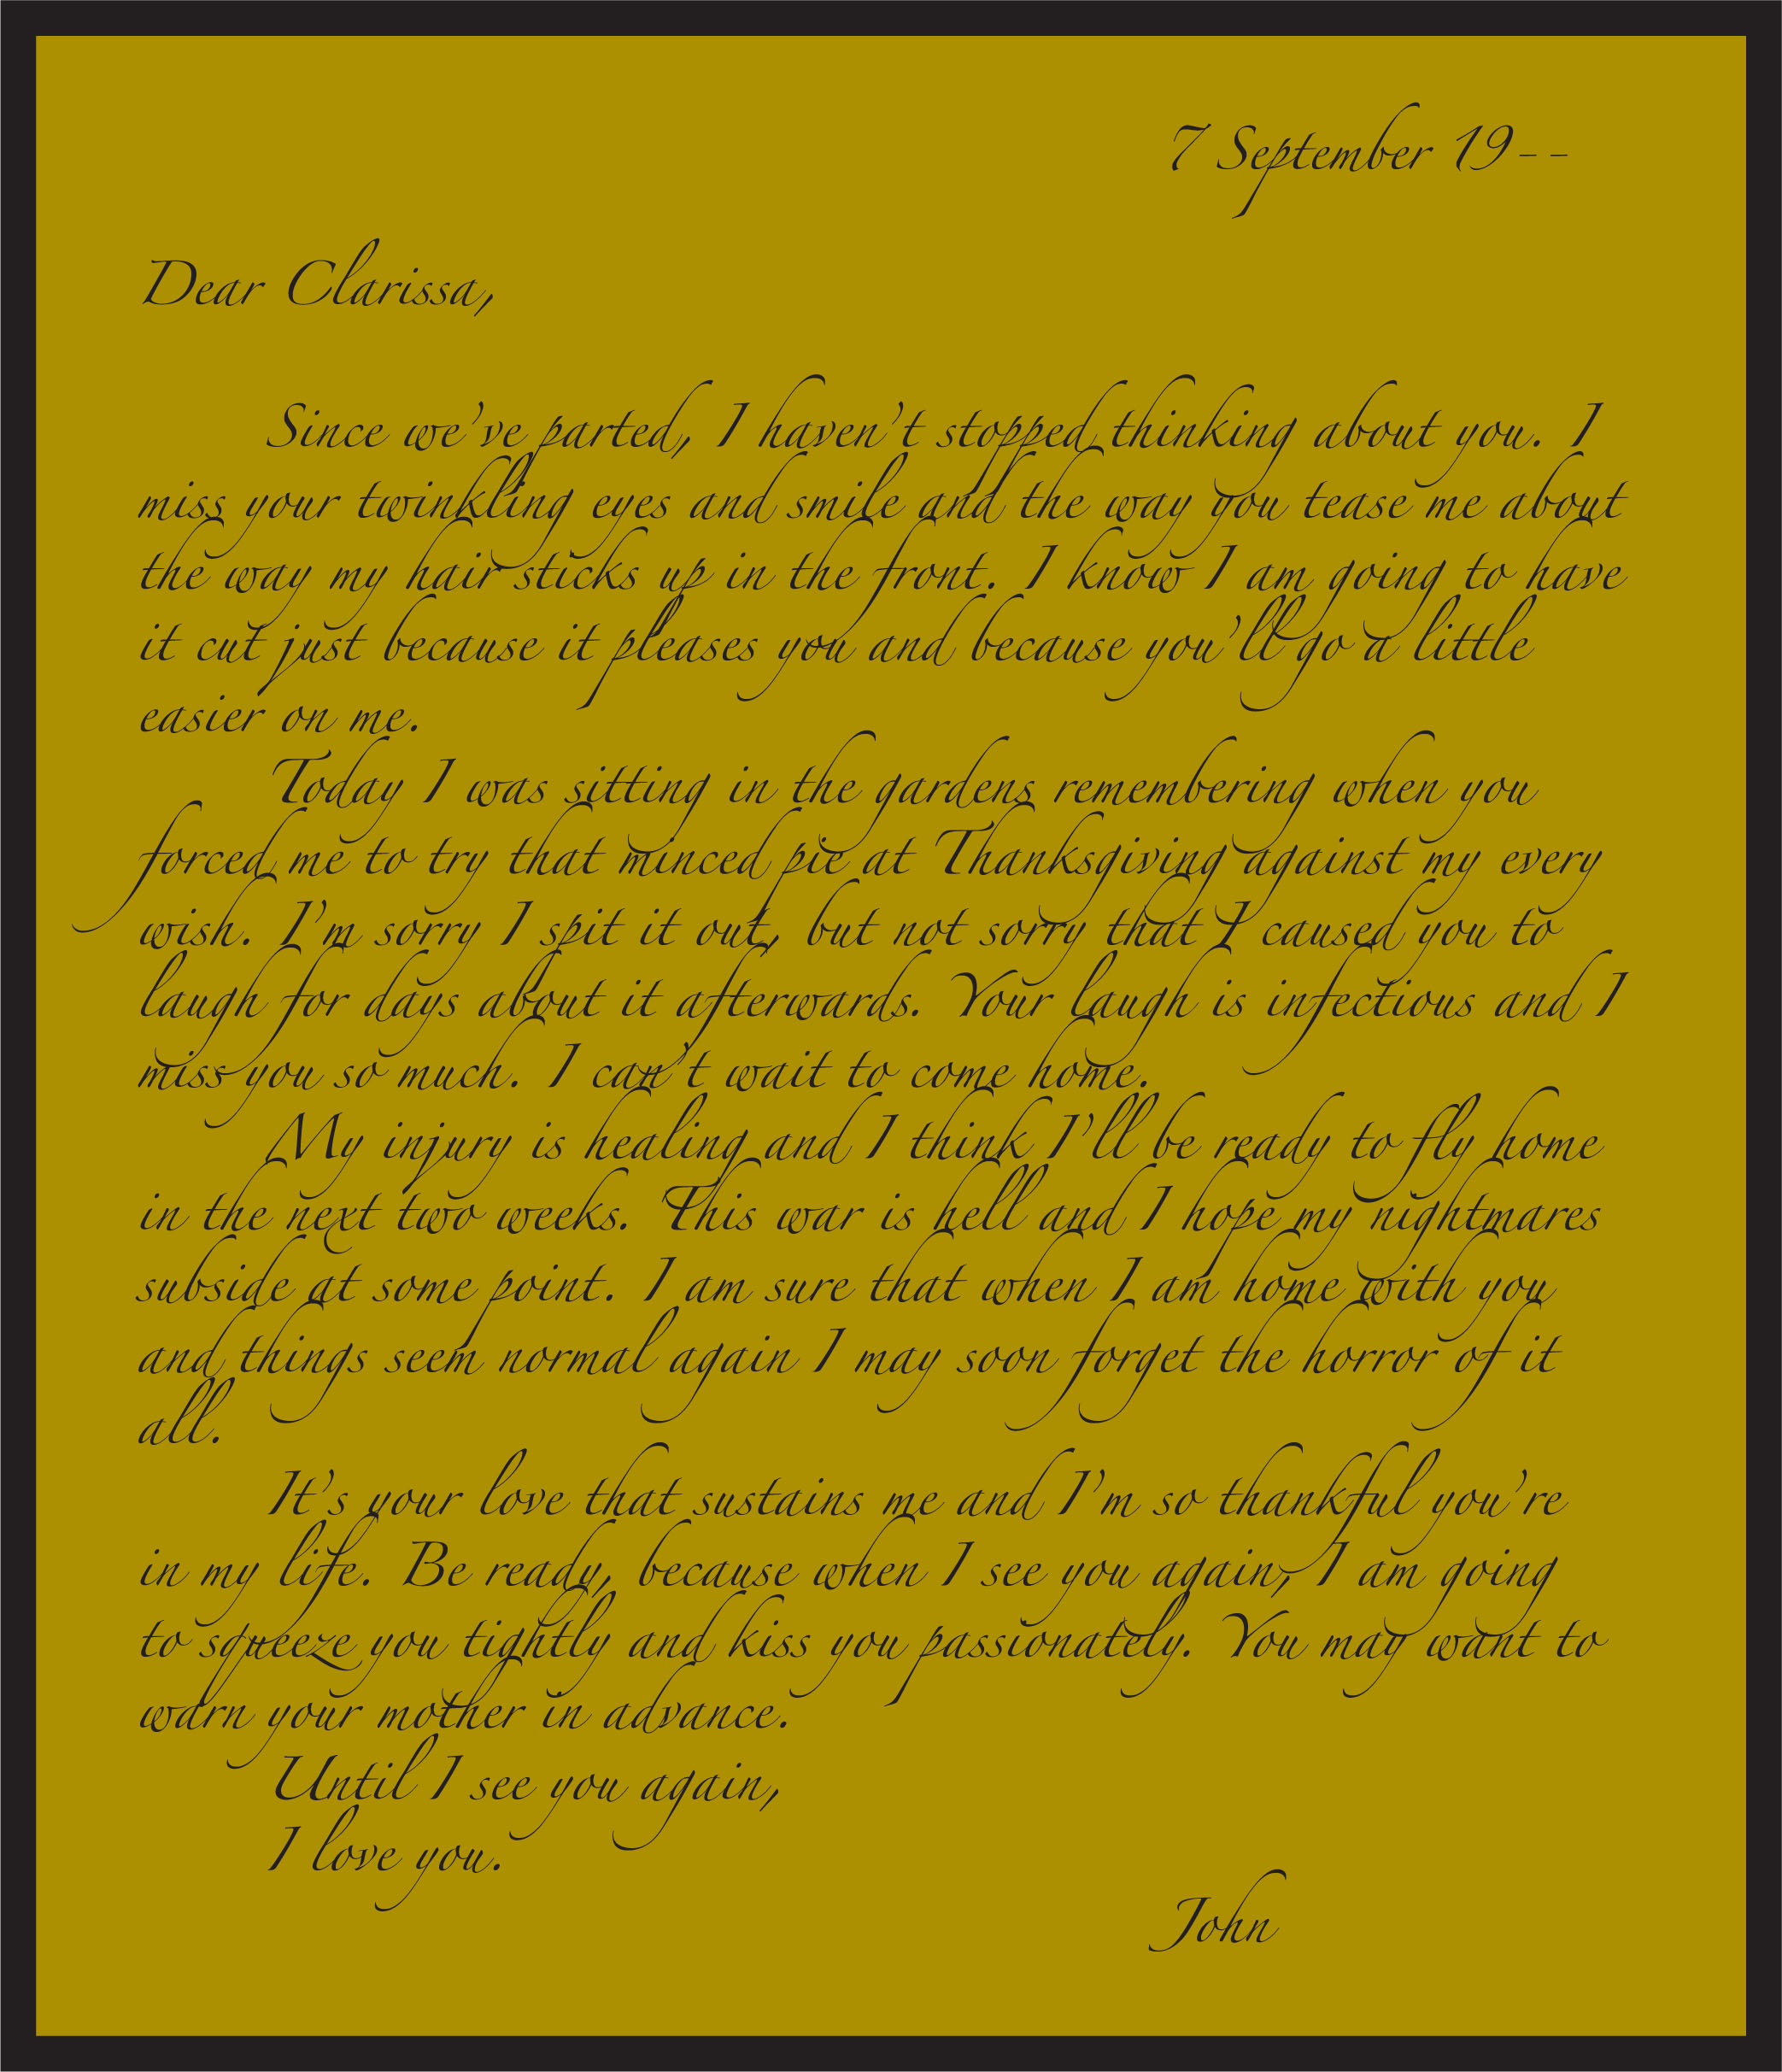 Instructions for writing a love letter taking the love letter oath spiritdancerdesigns Image collections